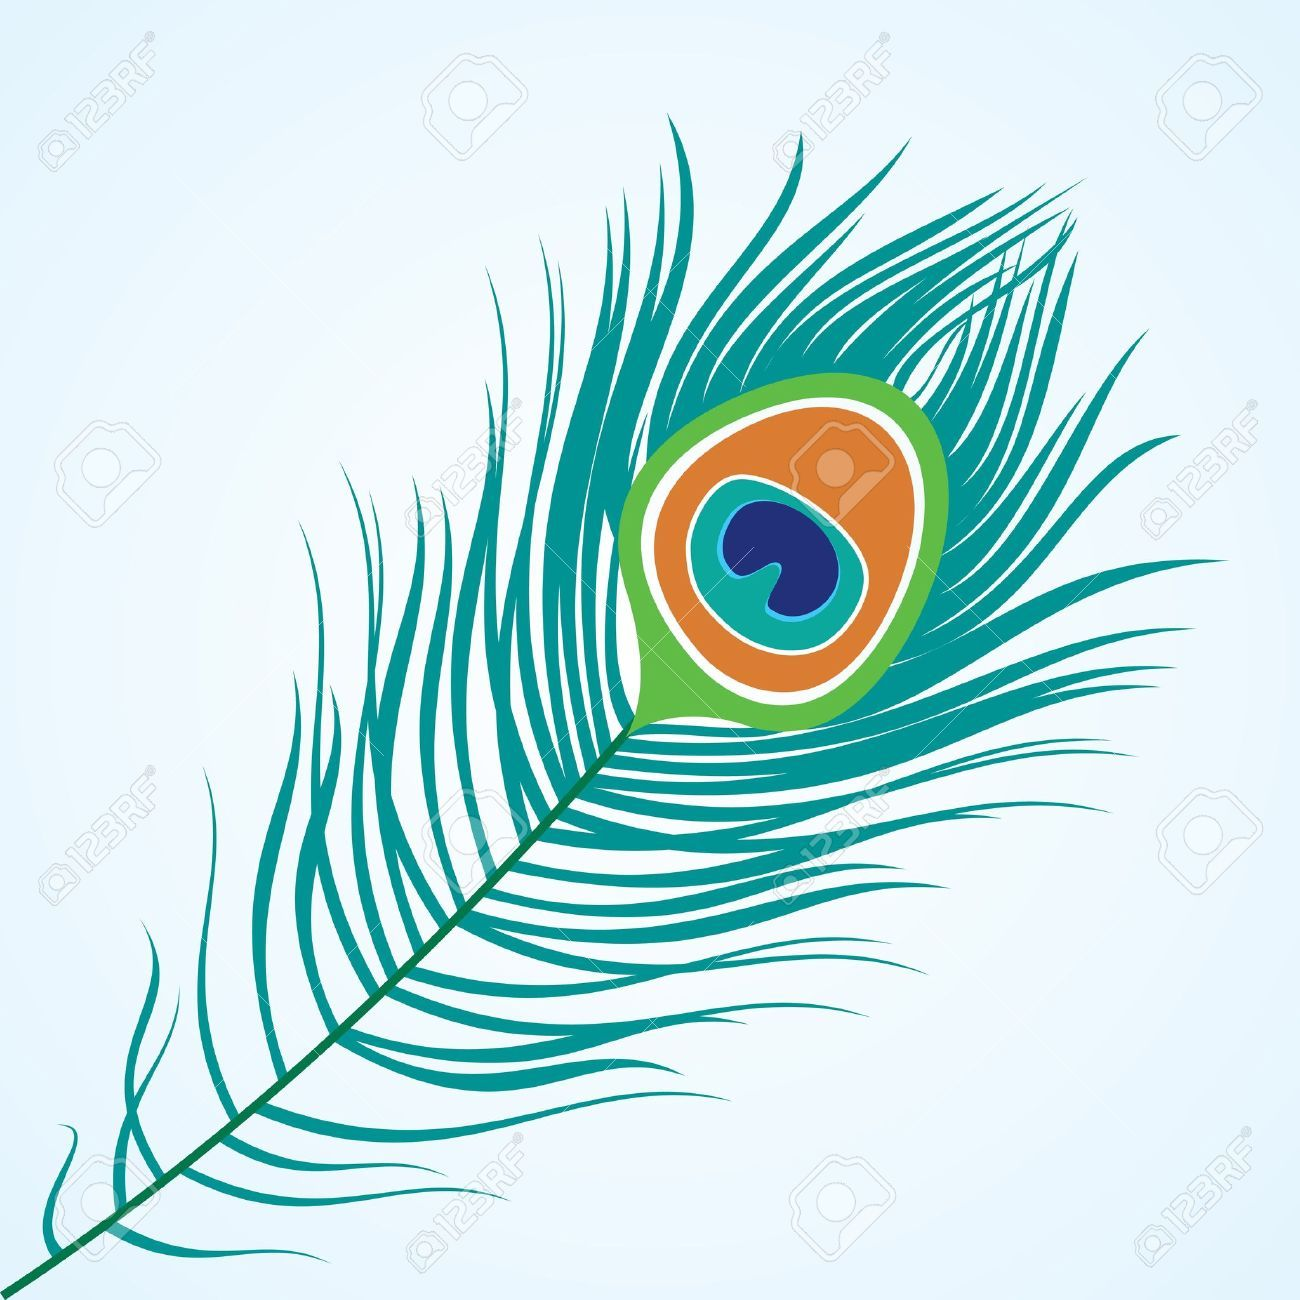 Peacock Stock Illustrations, Cliparts And Royalty Free.